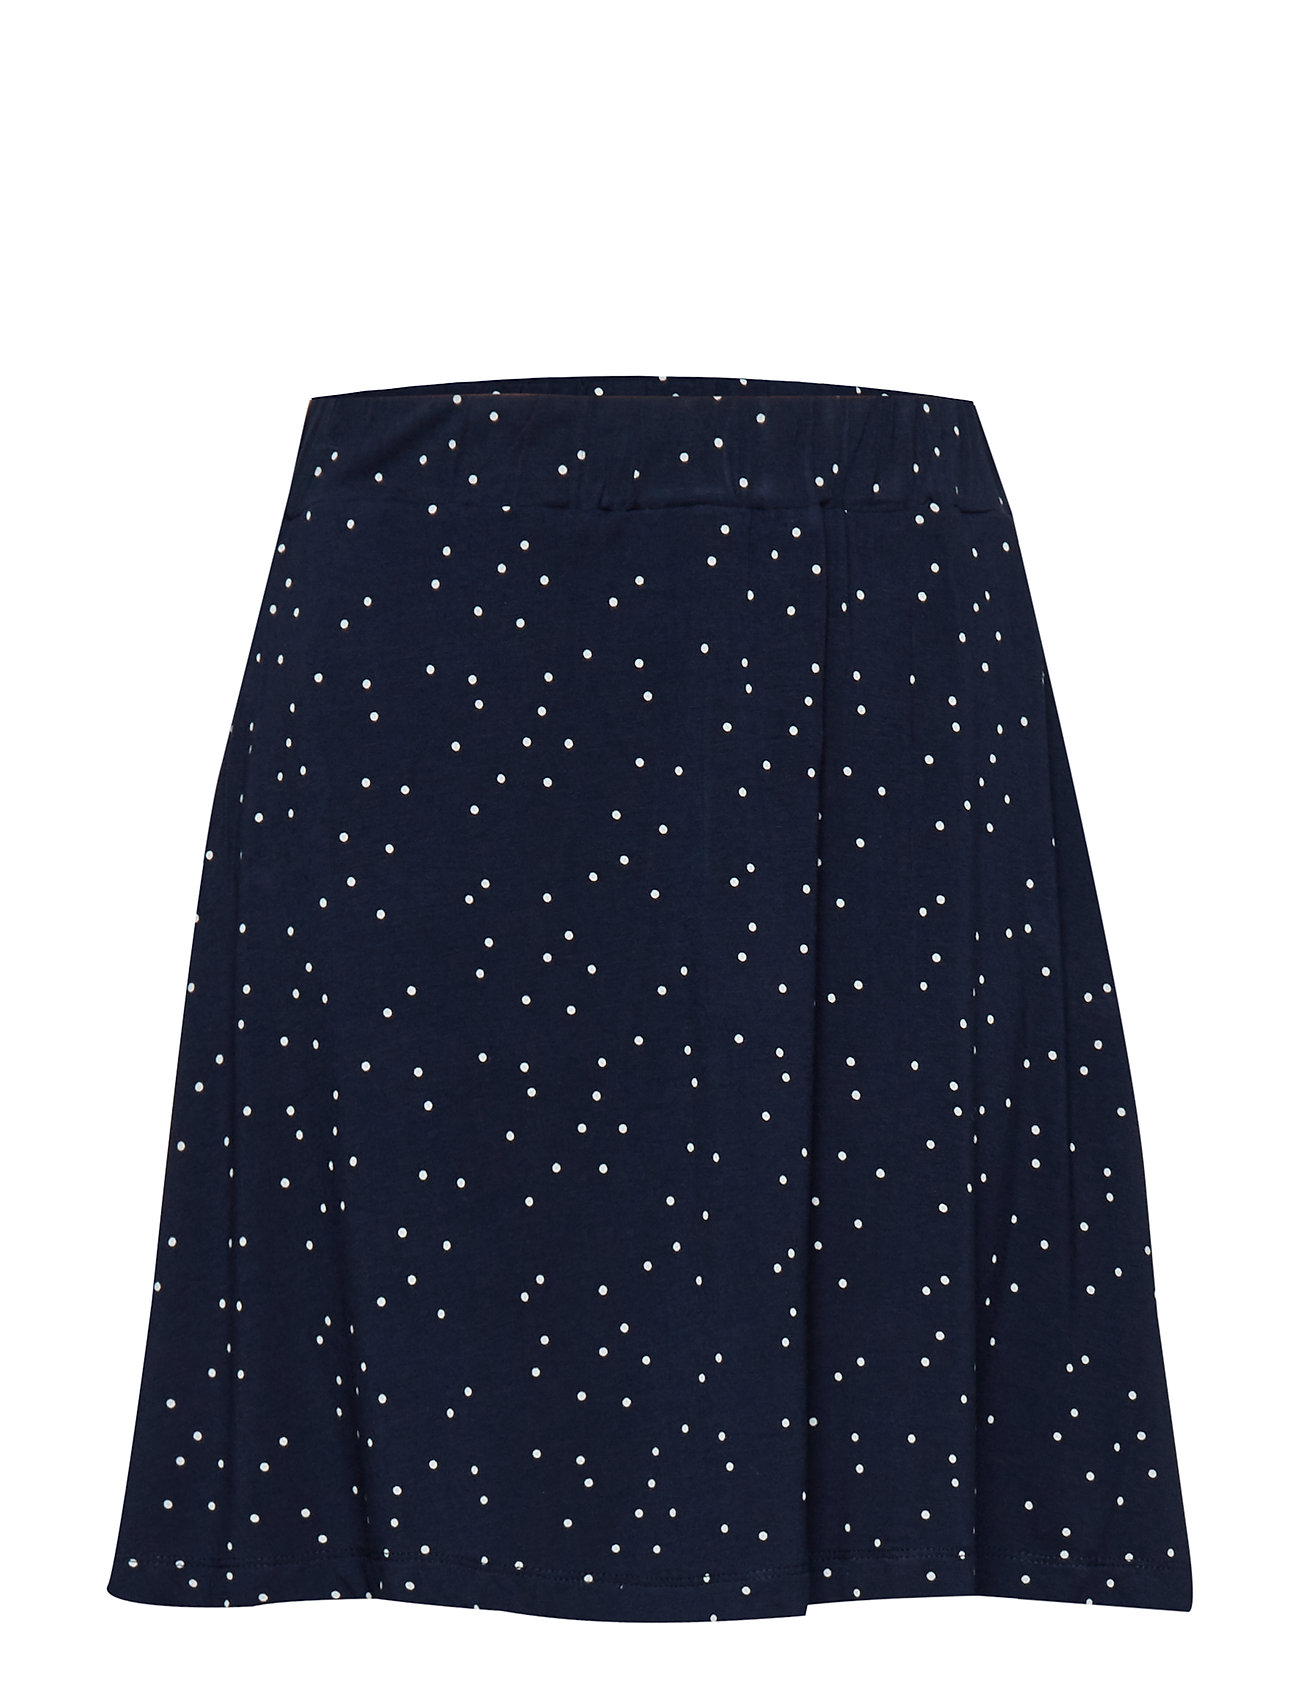 The New KISA SKIRT - BLACK IRIS